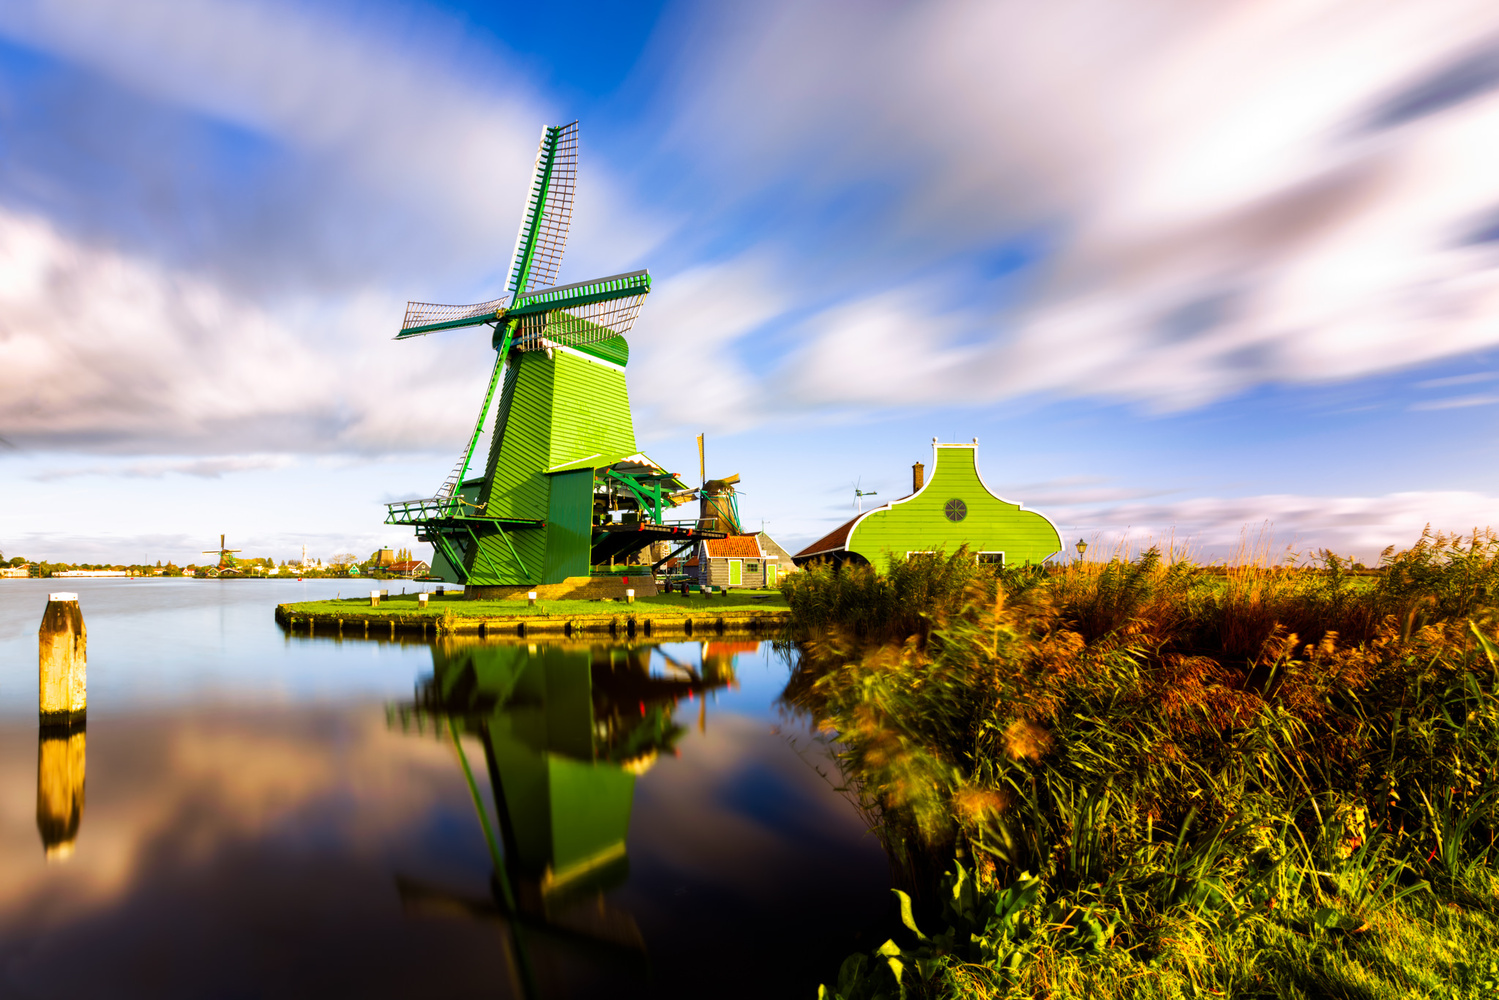 Windmills in Zaanse Schans | Netherlands by Nico Trinkhaus